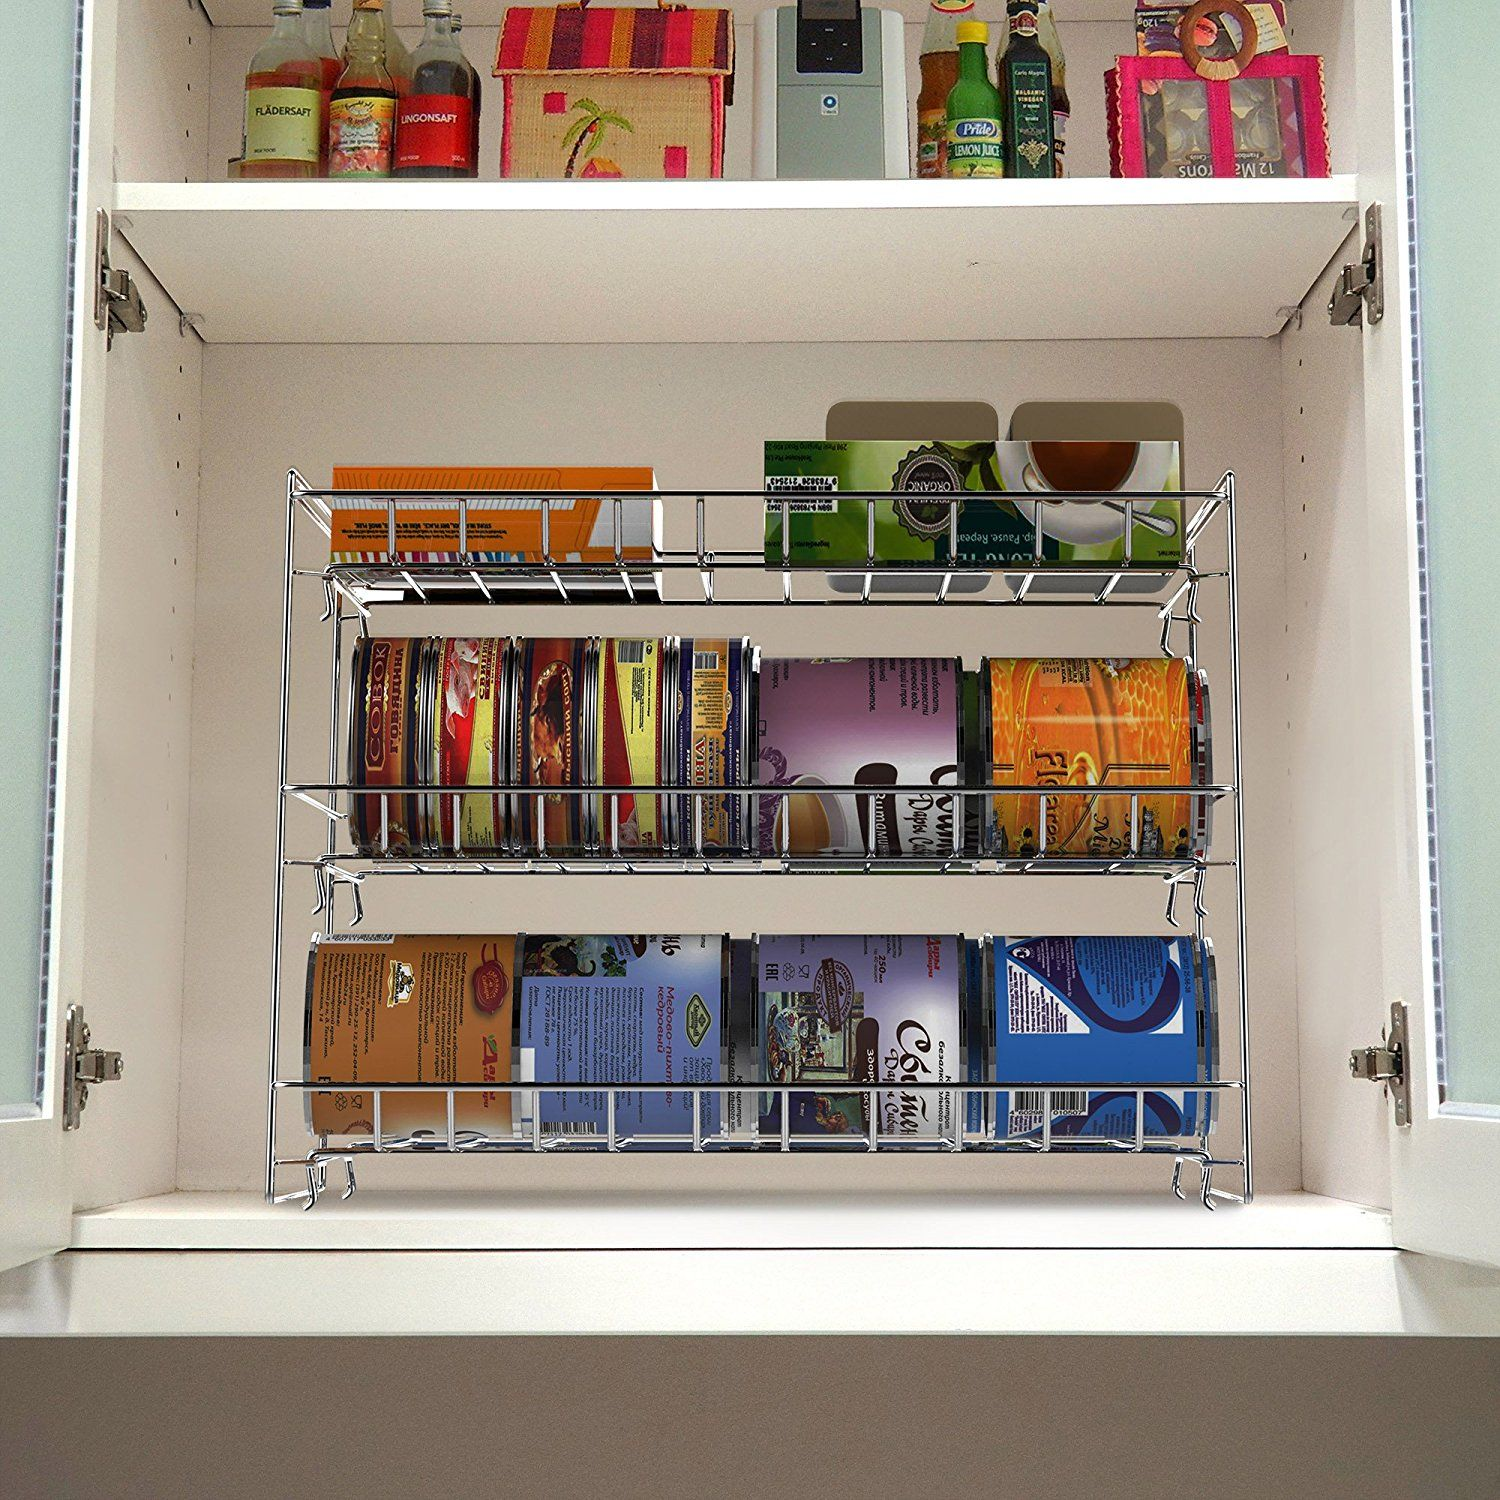 Amazonsmile 3 Tier Can Dispenser Stackable Can Organizer Rack For Kitchen Pantry Countertop And Cabi Space Saving Kitchen Shelving Racks Storage Cabinets